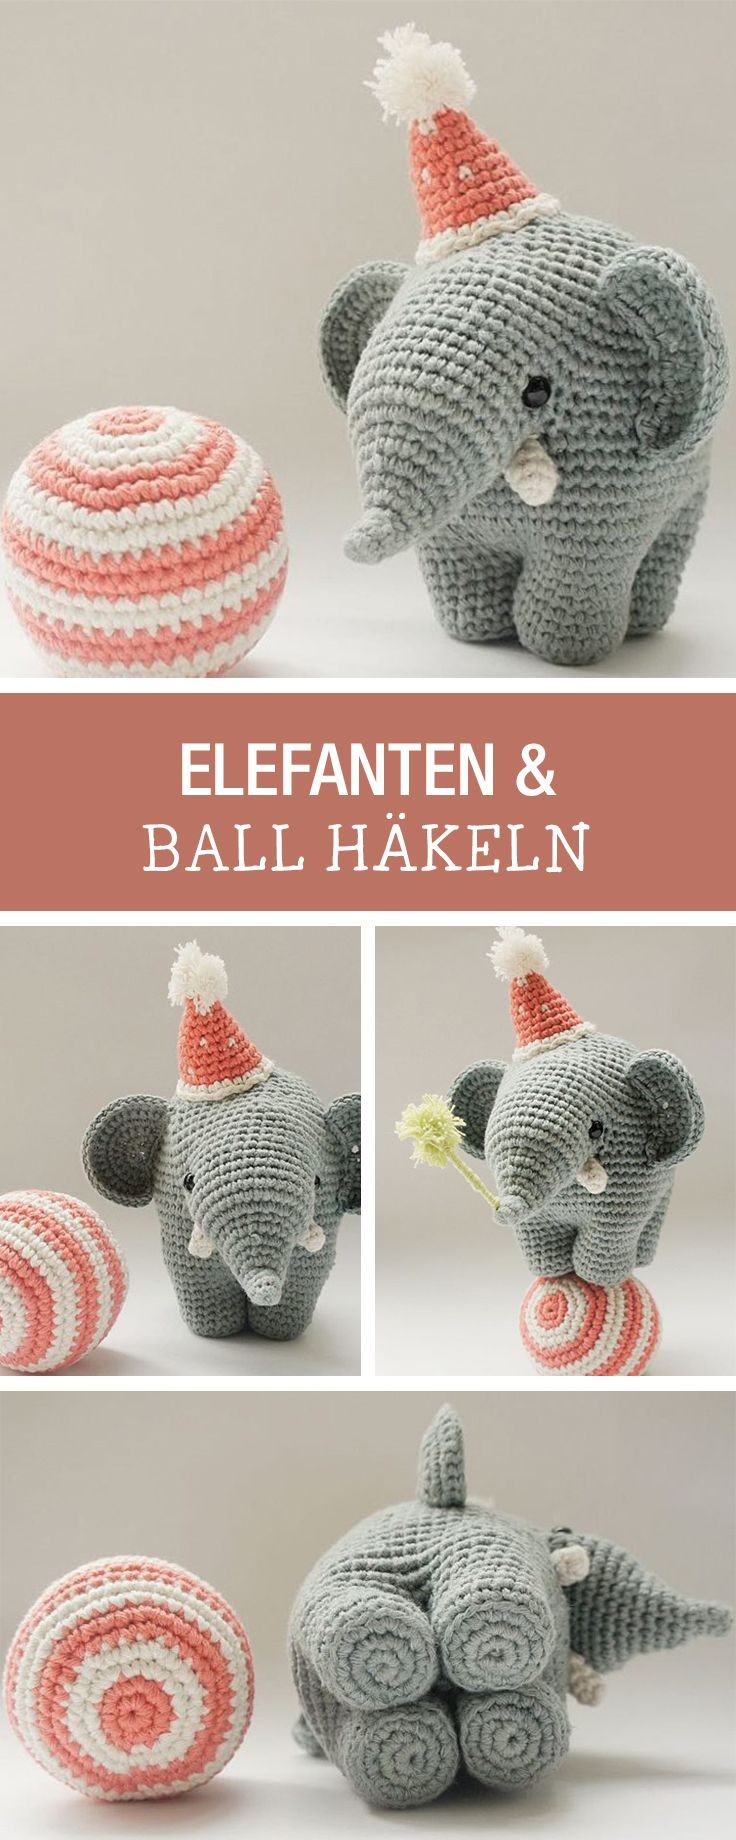 DIY-Anleitung: kleinen Partyelefanten häkeln, Zirkuselefant mit Ball und Hut / DIY tutorial: crocheting smal party elephant, circus elephant with ball and hat via DaWanda.com